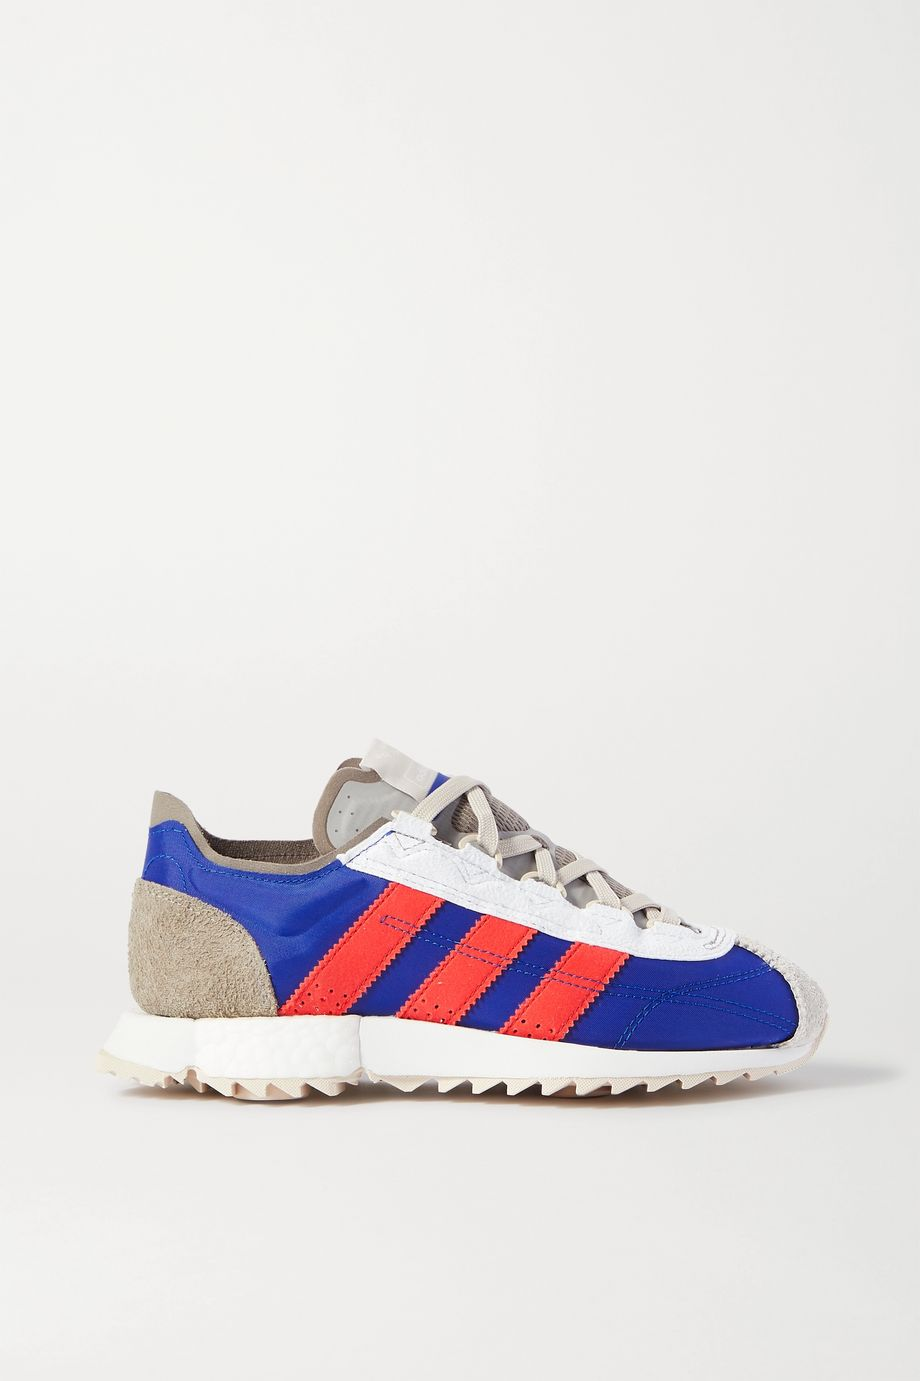 adidas Originals SL 7600 leather-trimmed shell, suede and mesh sneakers